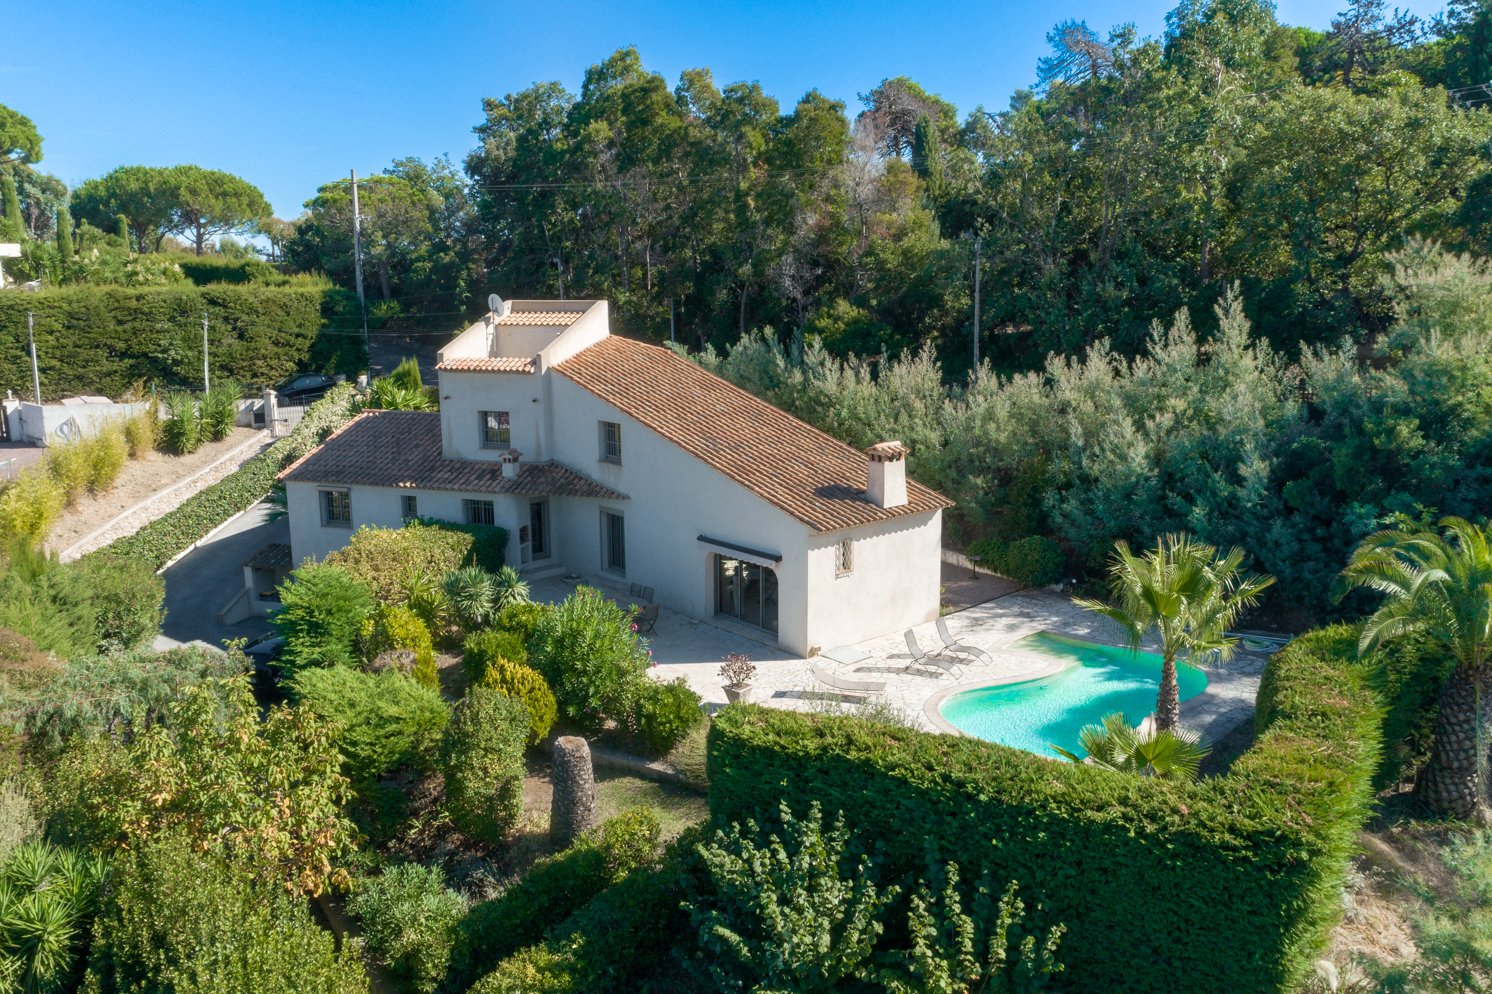 SUPER CANNES - BEAUTIFUL RENOVATED VILLA